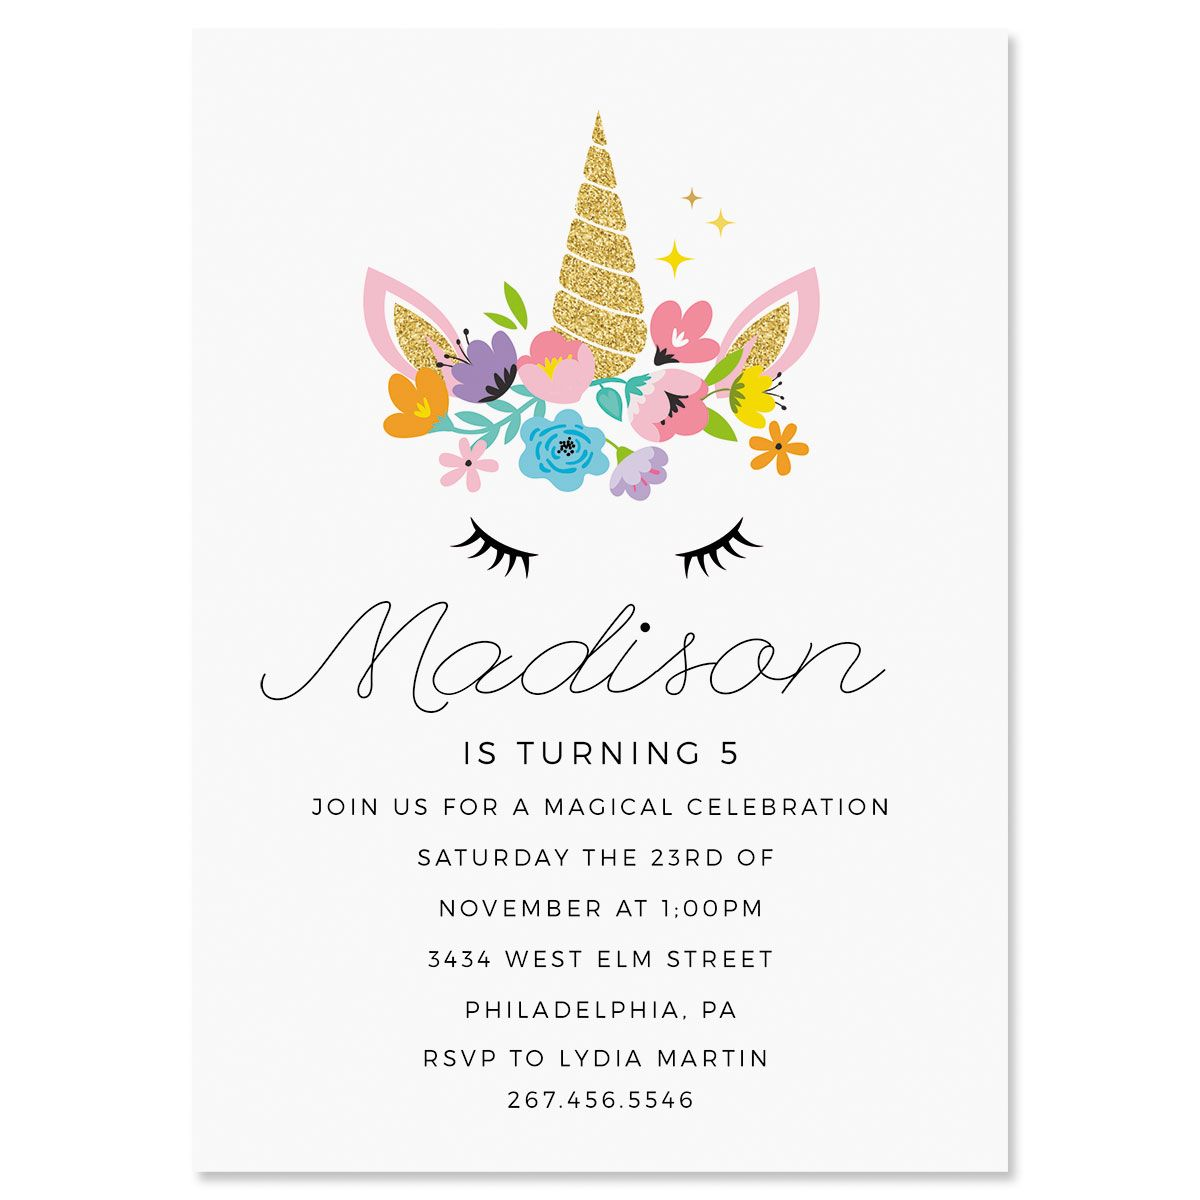 Personalized Bashful Unicorn Birthday Invitations